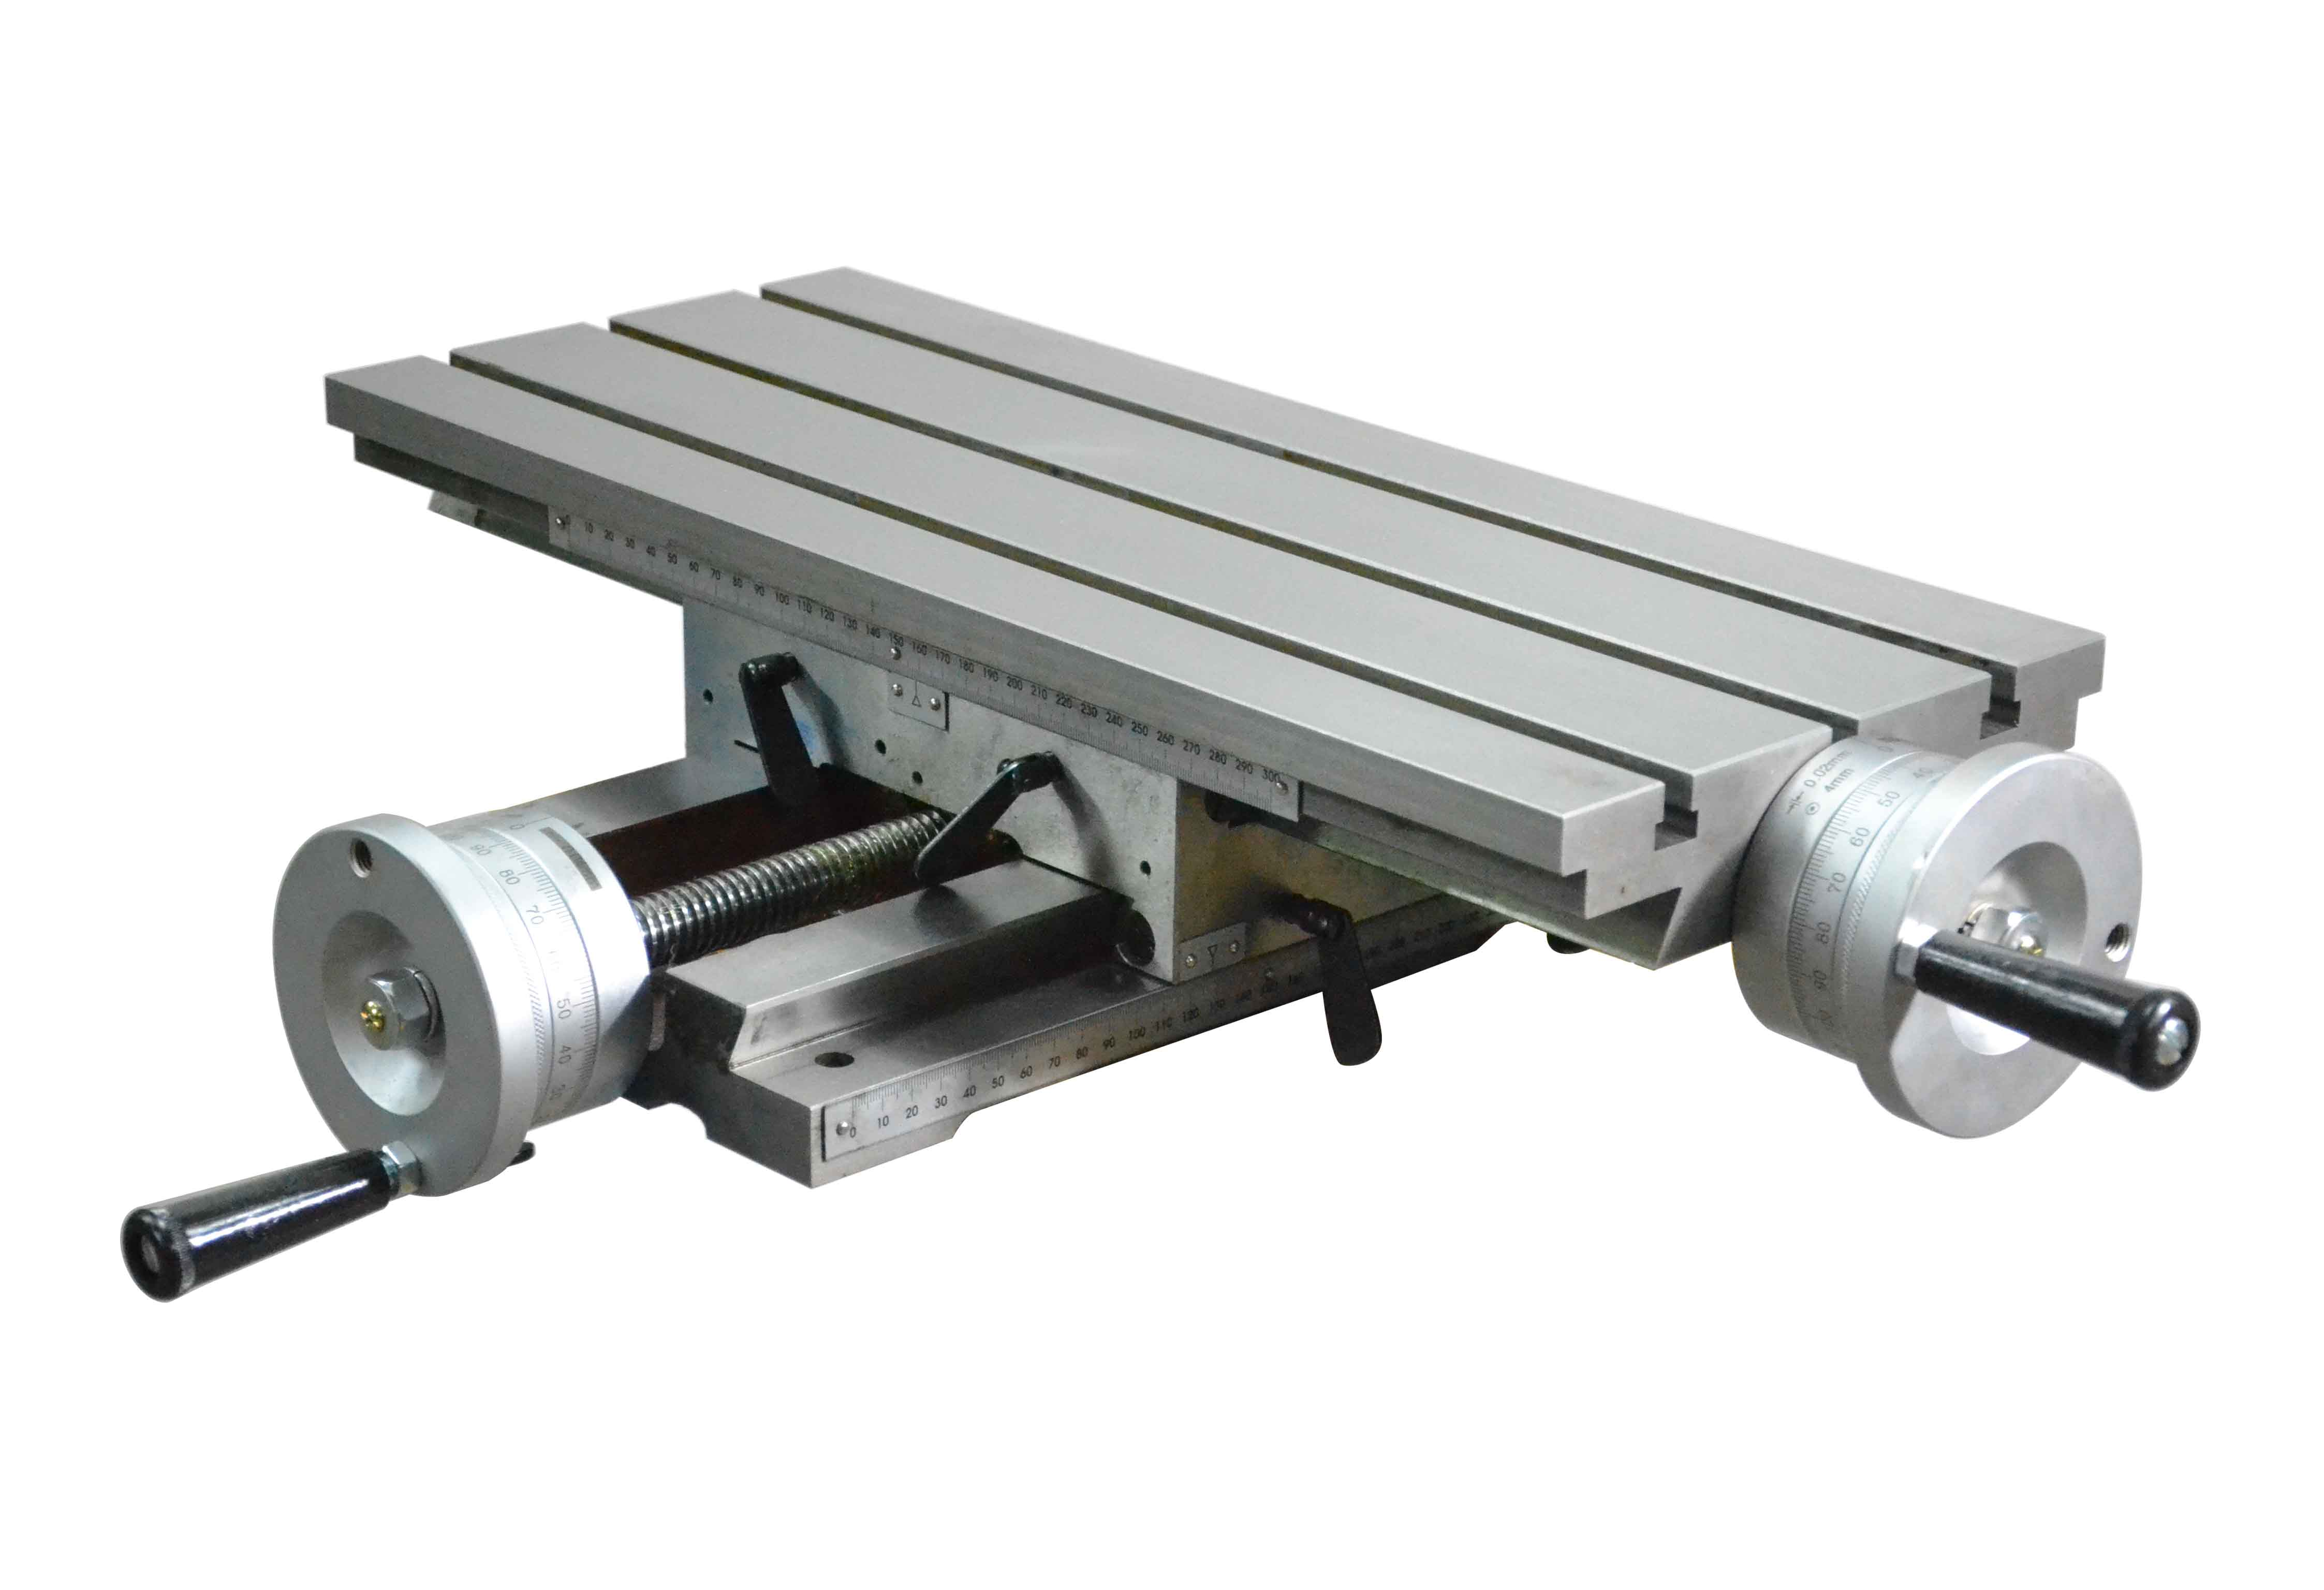 ... Table Mounted On Drilling/Tapping/Milling/Specially Purpose Machine